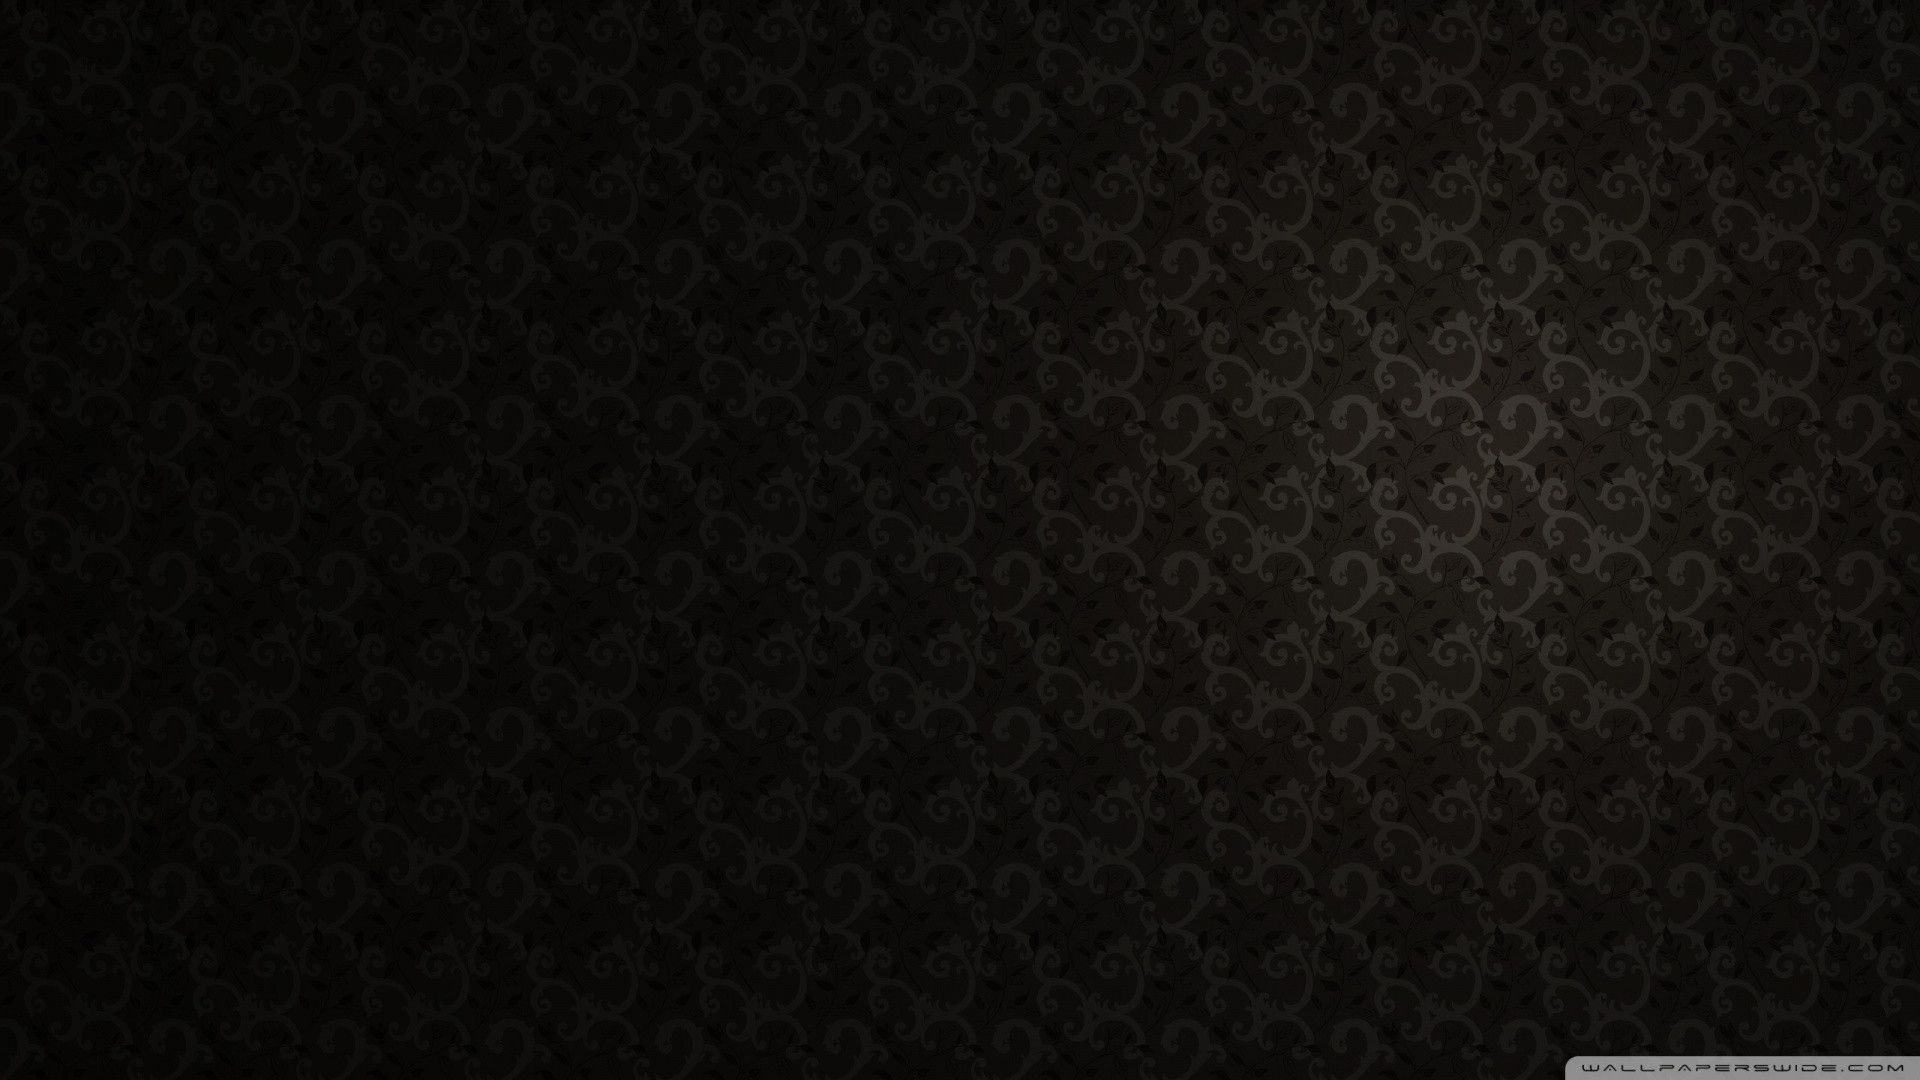 Dark Elegant Wallpaper